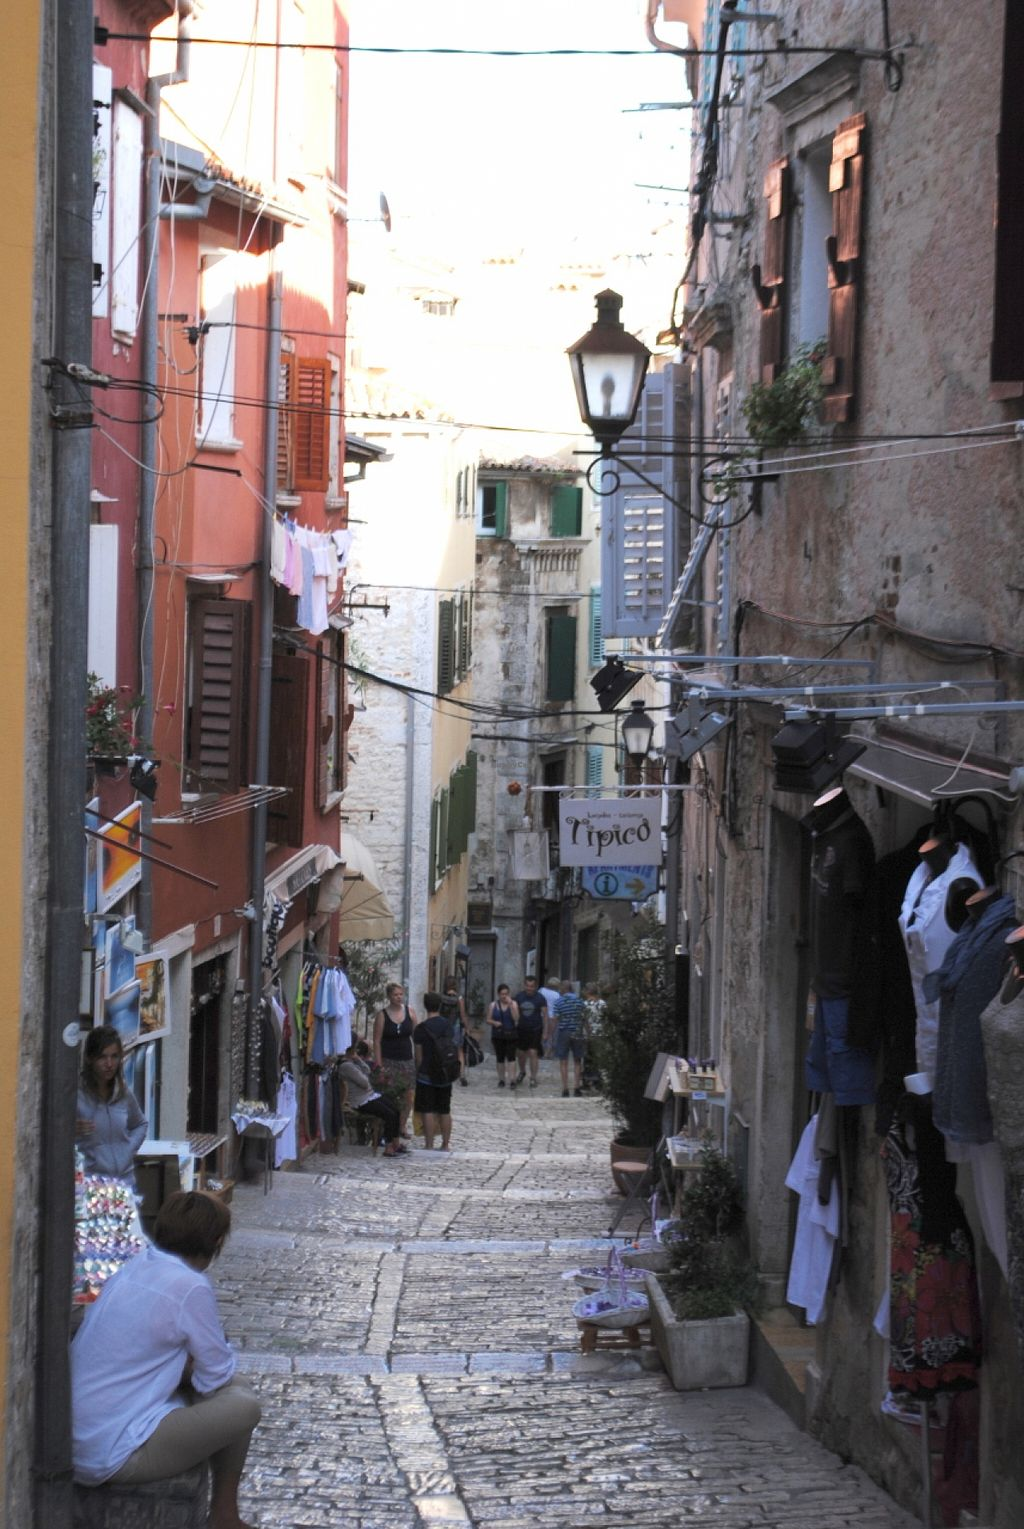 "Photo of Tipico  by <a href=""/members/profile/snafli"">snafli</a> <br/>Small alley in Rovinj where Tipico is located <br/> September 12, 2015  - <a href='/contact/abuse/image/51098/117465'>Report</a>"